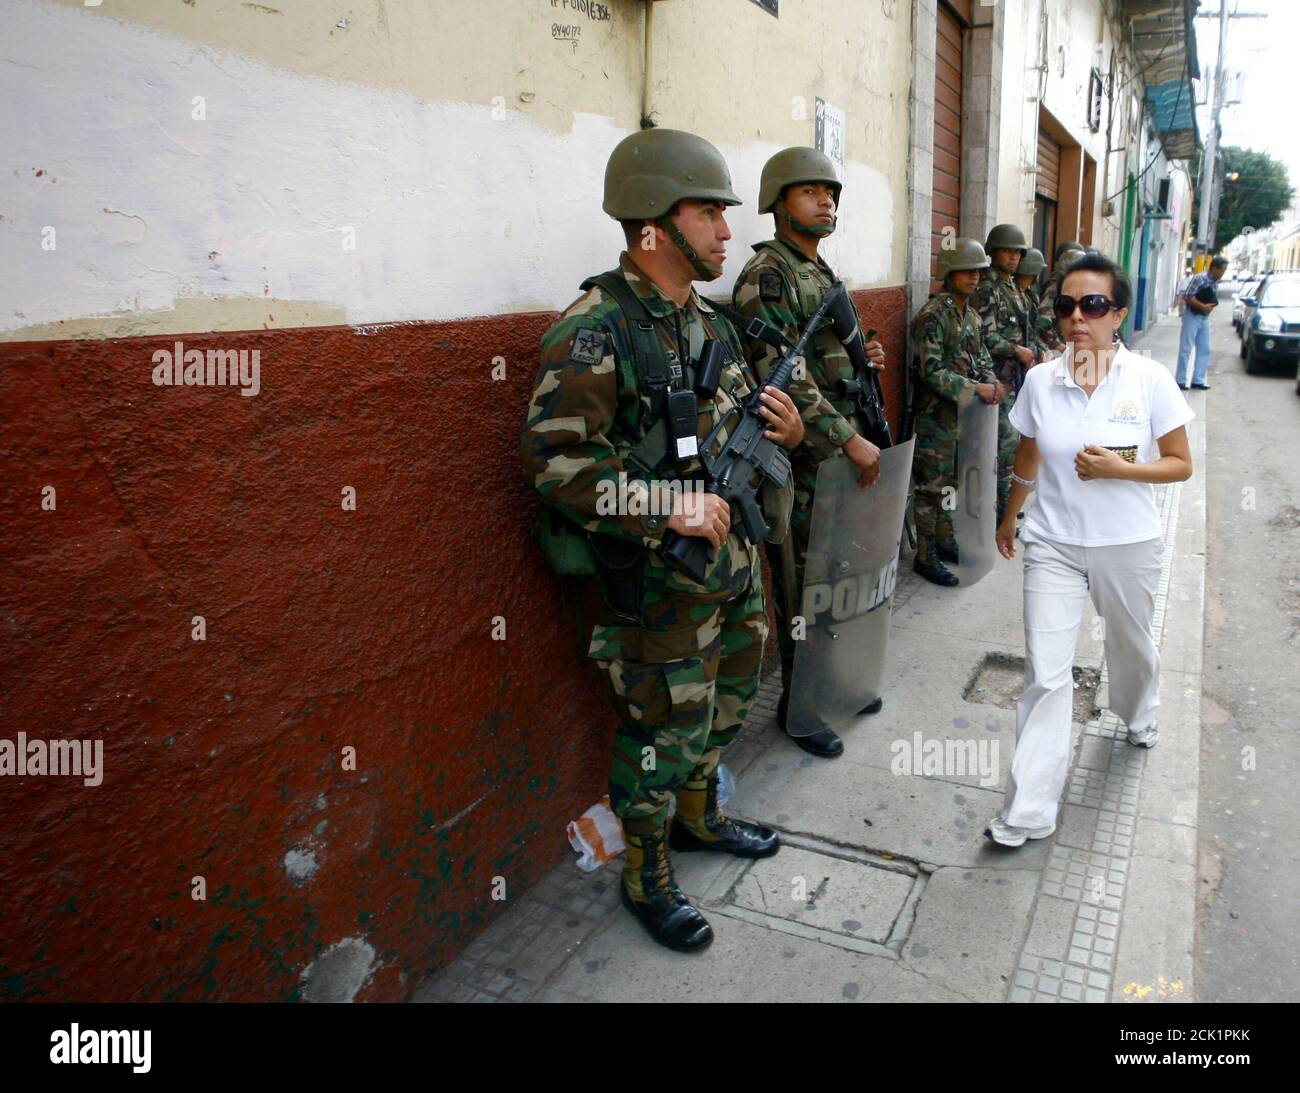 A woman walks past soldiers standing guard in Tegucigalpa July 7, 2009. Ousted Honduran President Manuel Zelaya said on Tuesday he accepted the mediation of Costa Rican President Oscar Arias to try to solve his country's political crisis following the June 28 coup that ousted him. REUTERS/Henry Romero (HONDURAS CONFLICT MILITARY POLITICS) Stock Photo